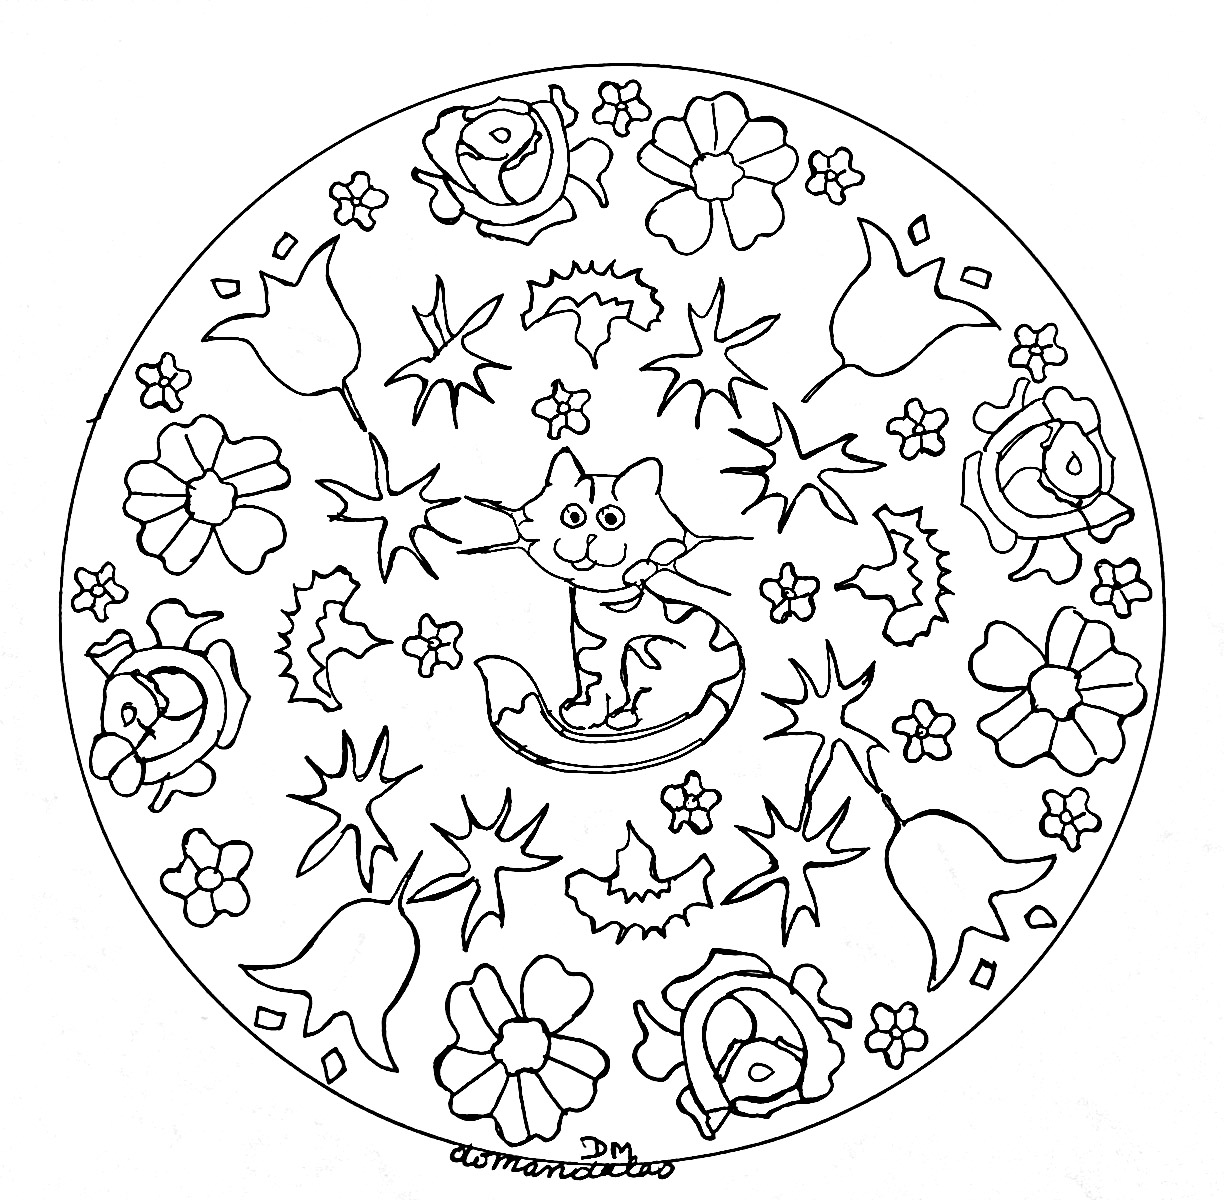 - Mandalas Free To Color For Children - Mandalas Kids Coloring Pages